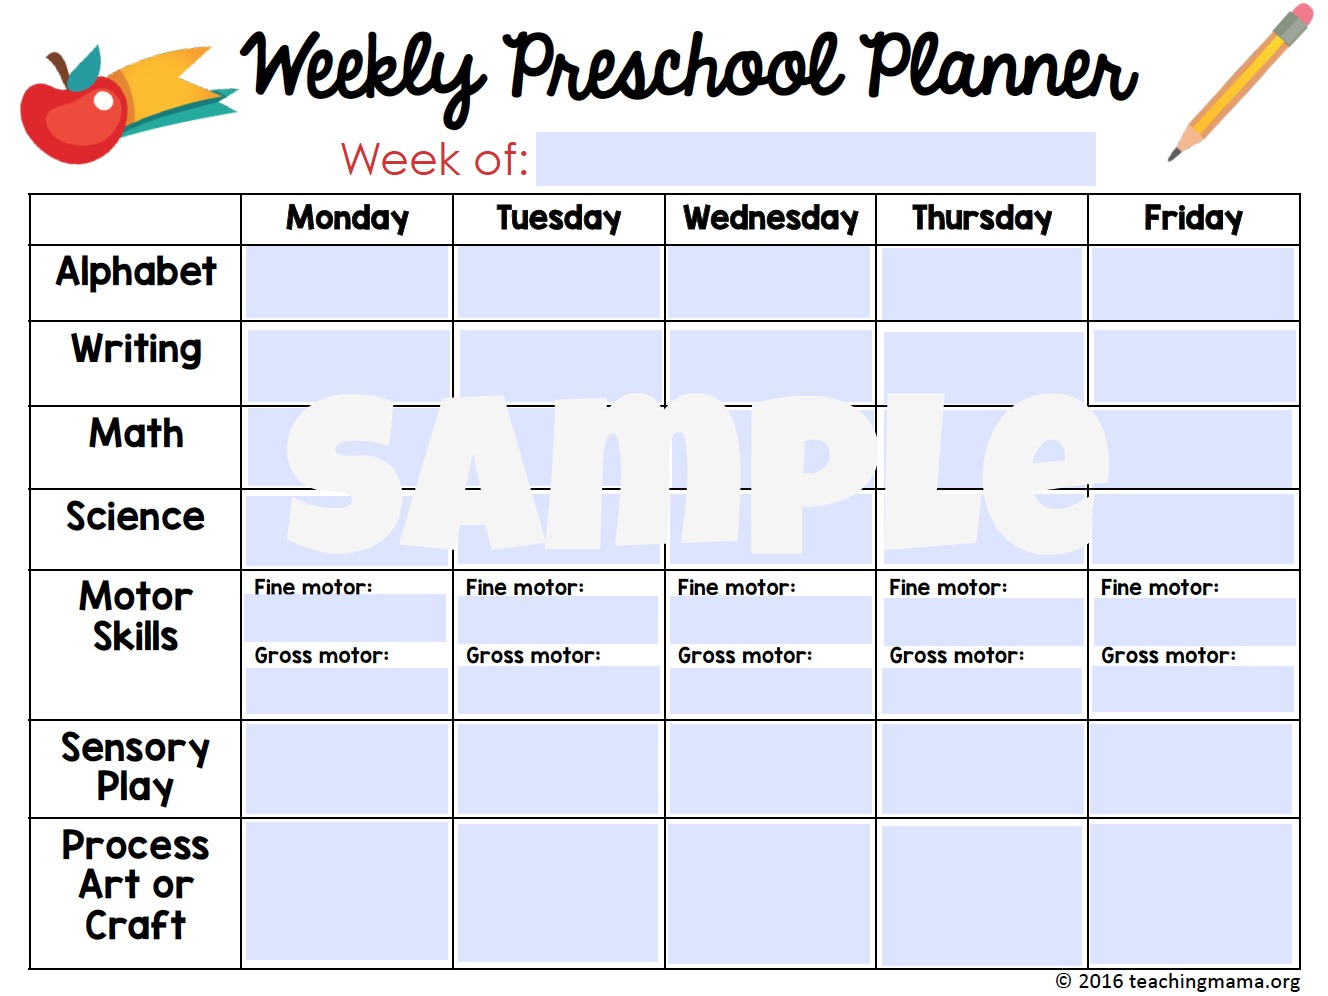 Printable Classroom Planner for 2017-2018